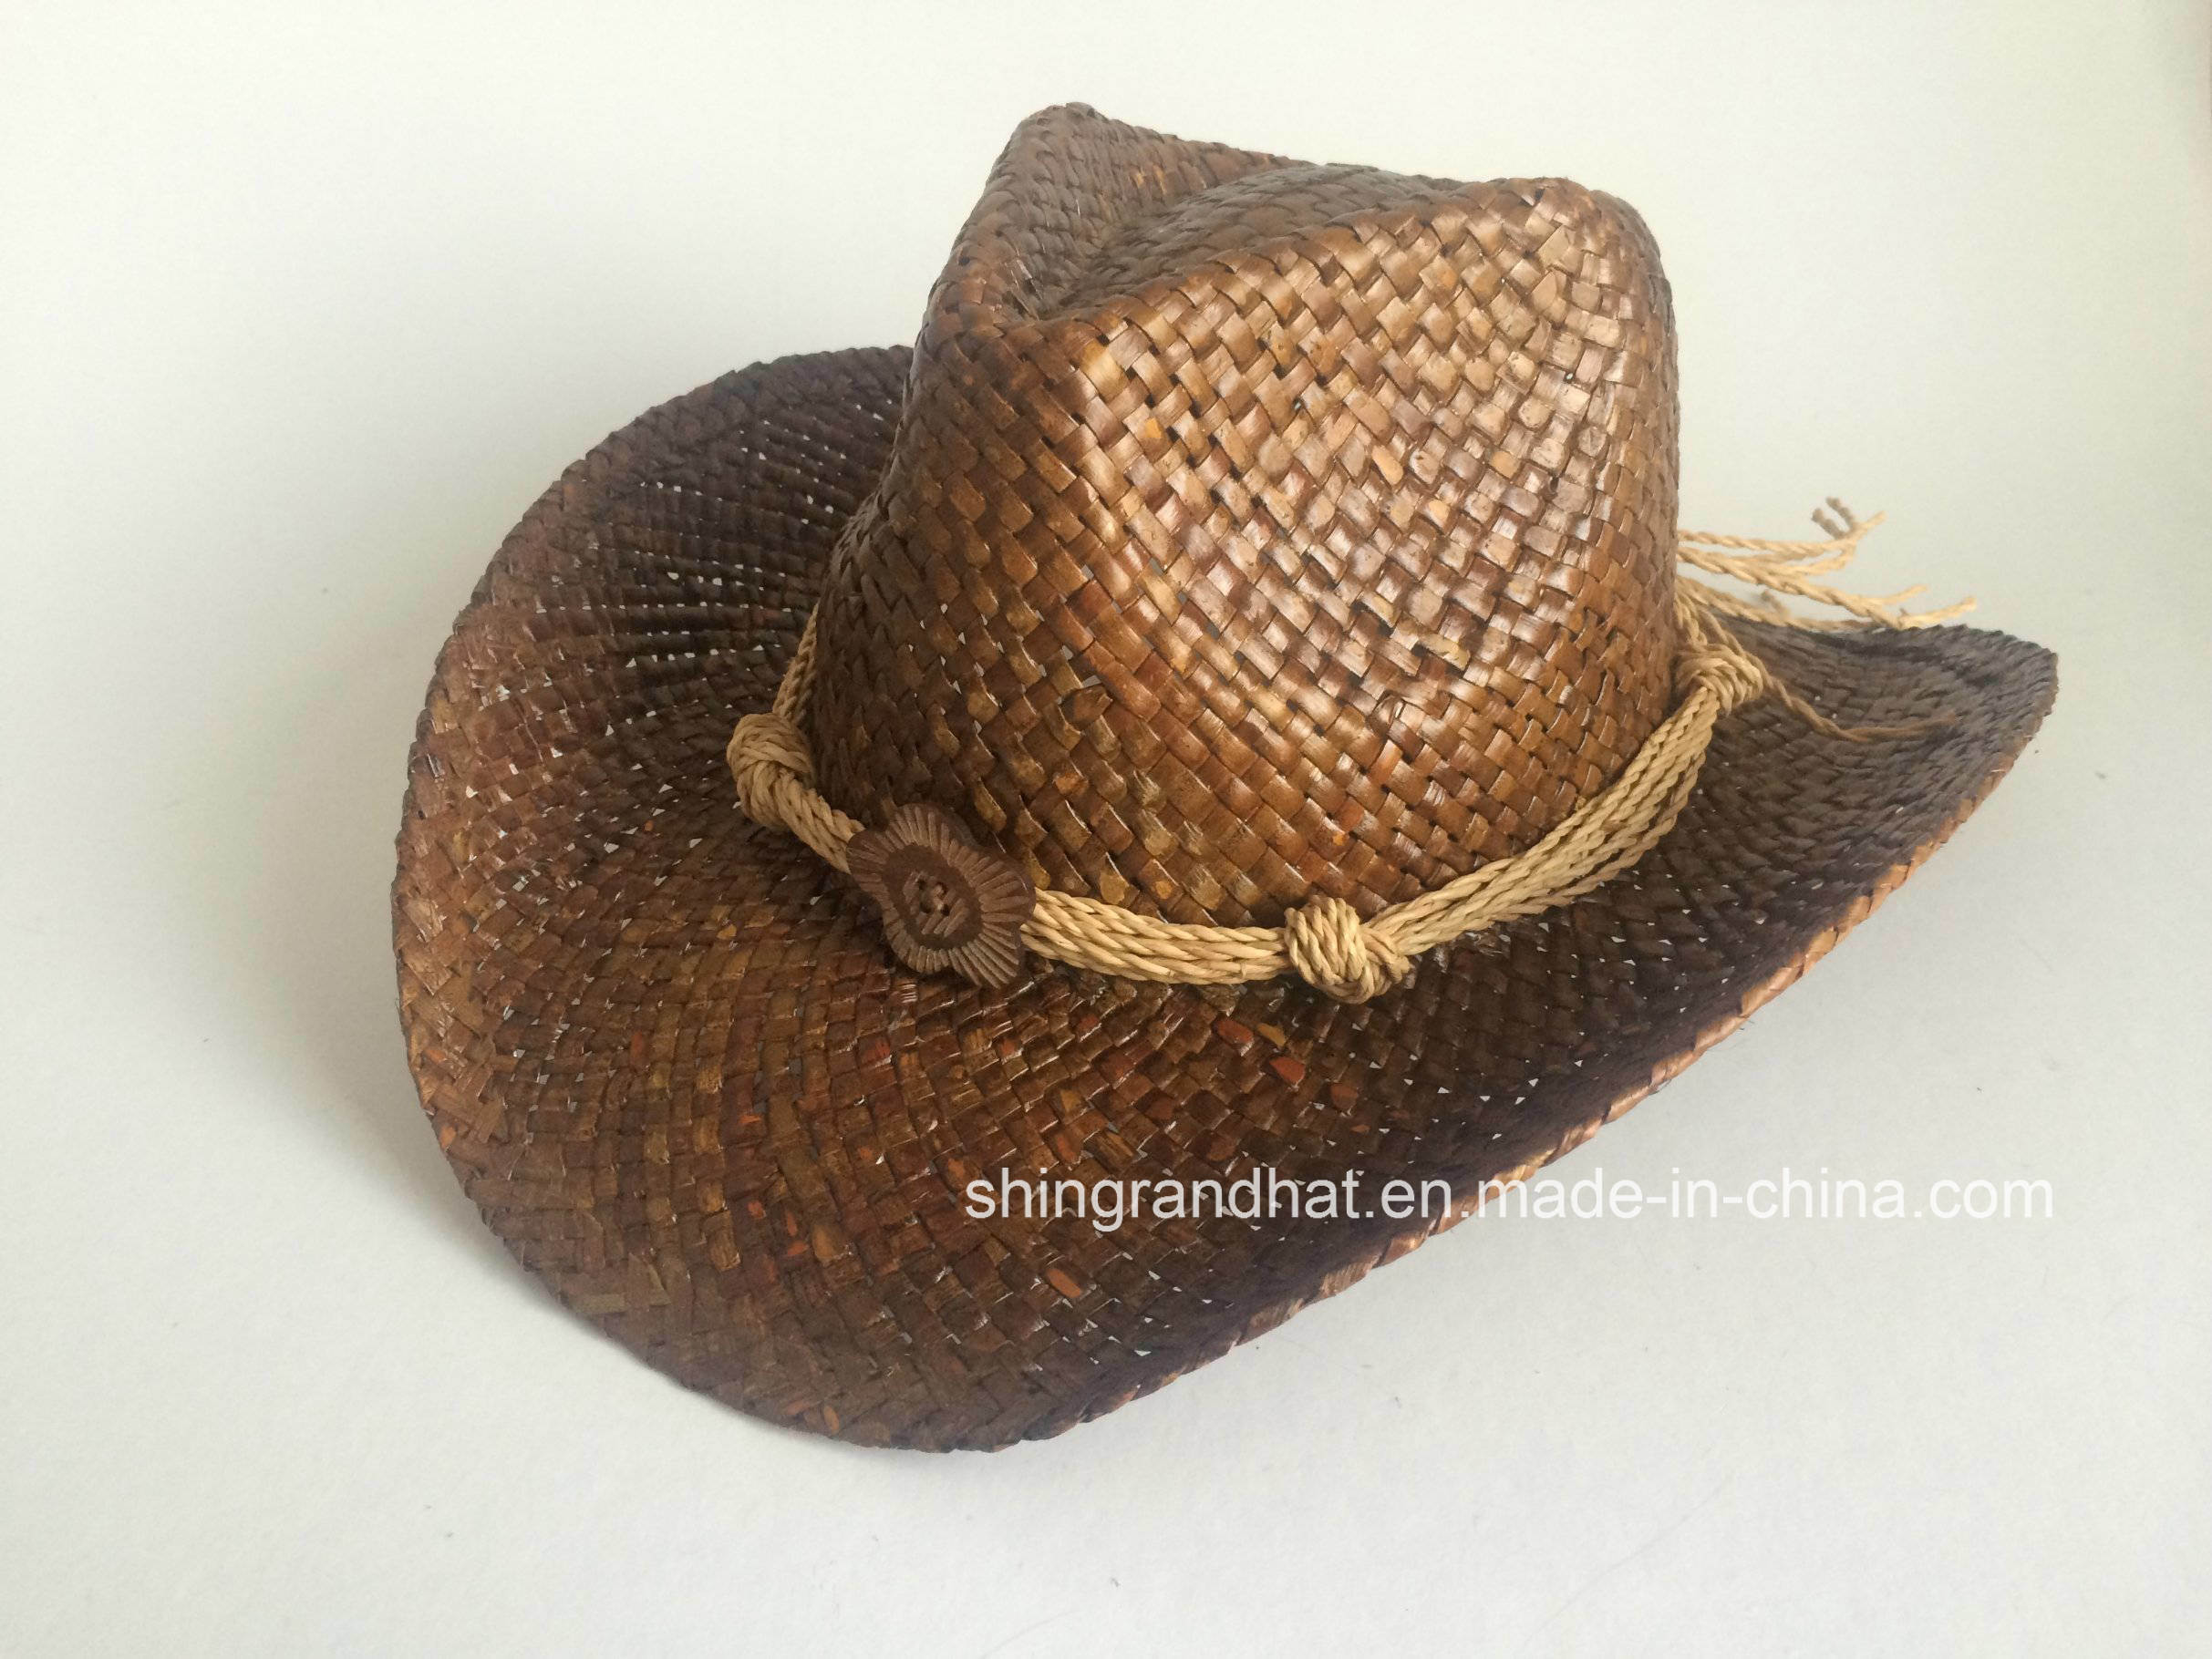 China Paint Seagrass Straw Cowboy Hat Photos   Pictures - Made-in ... 5865c4ebdf1